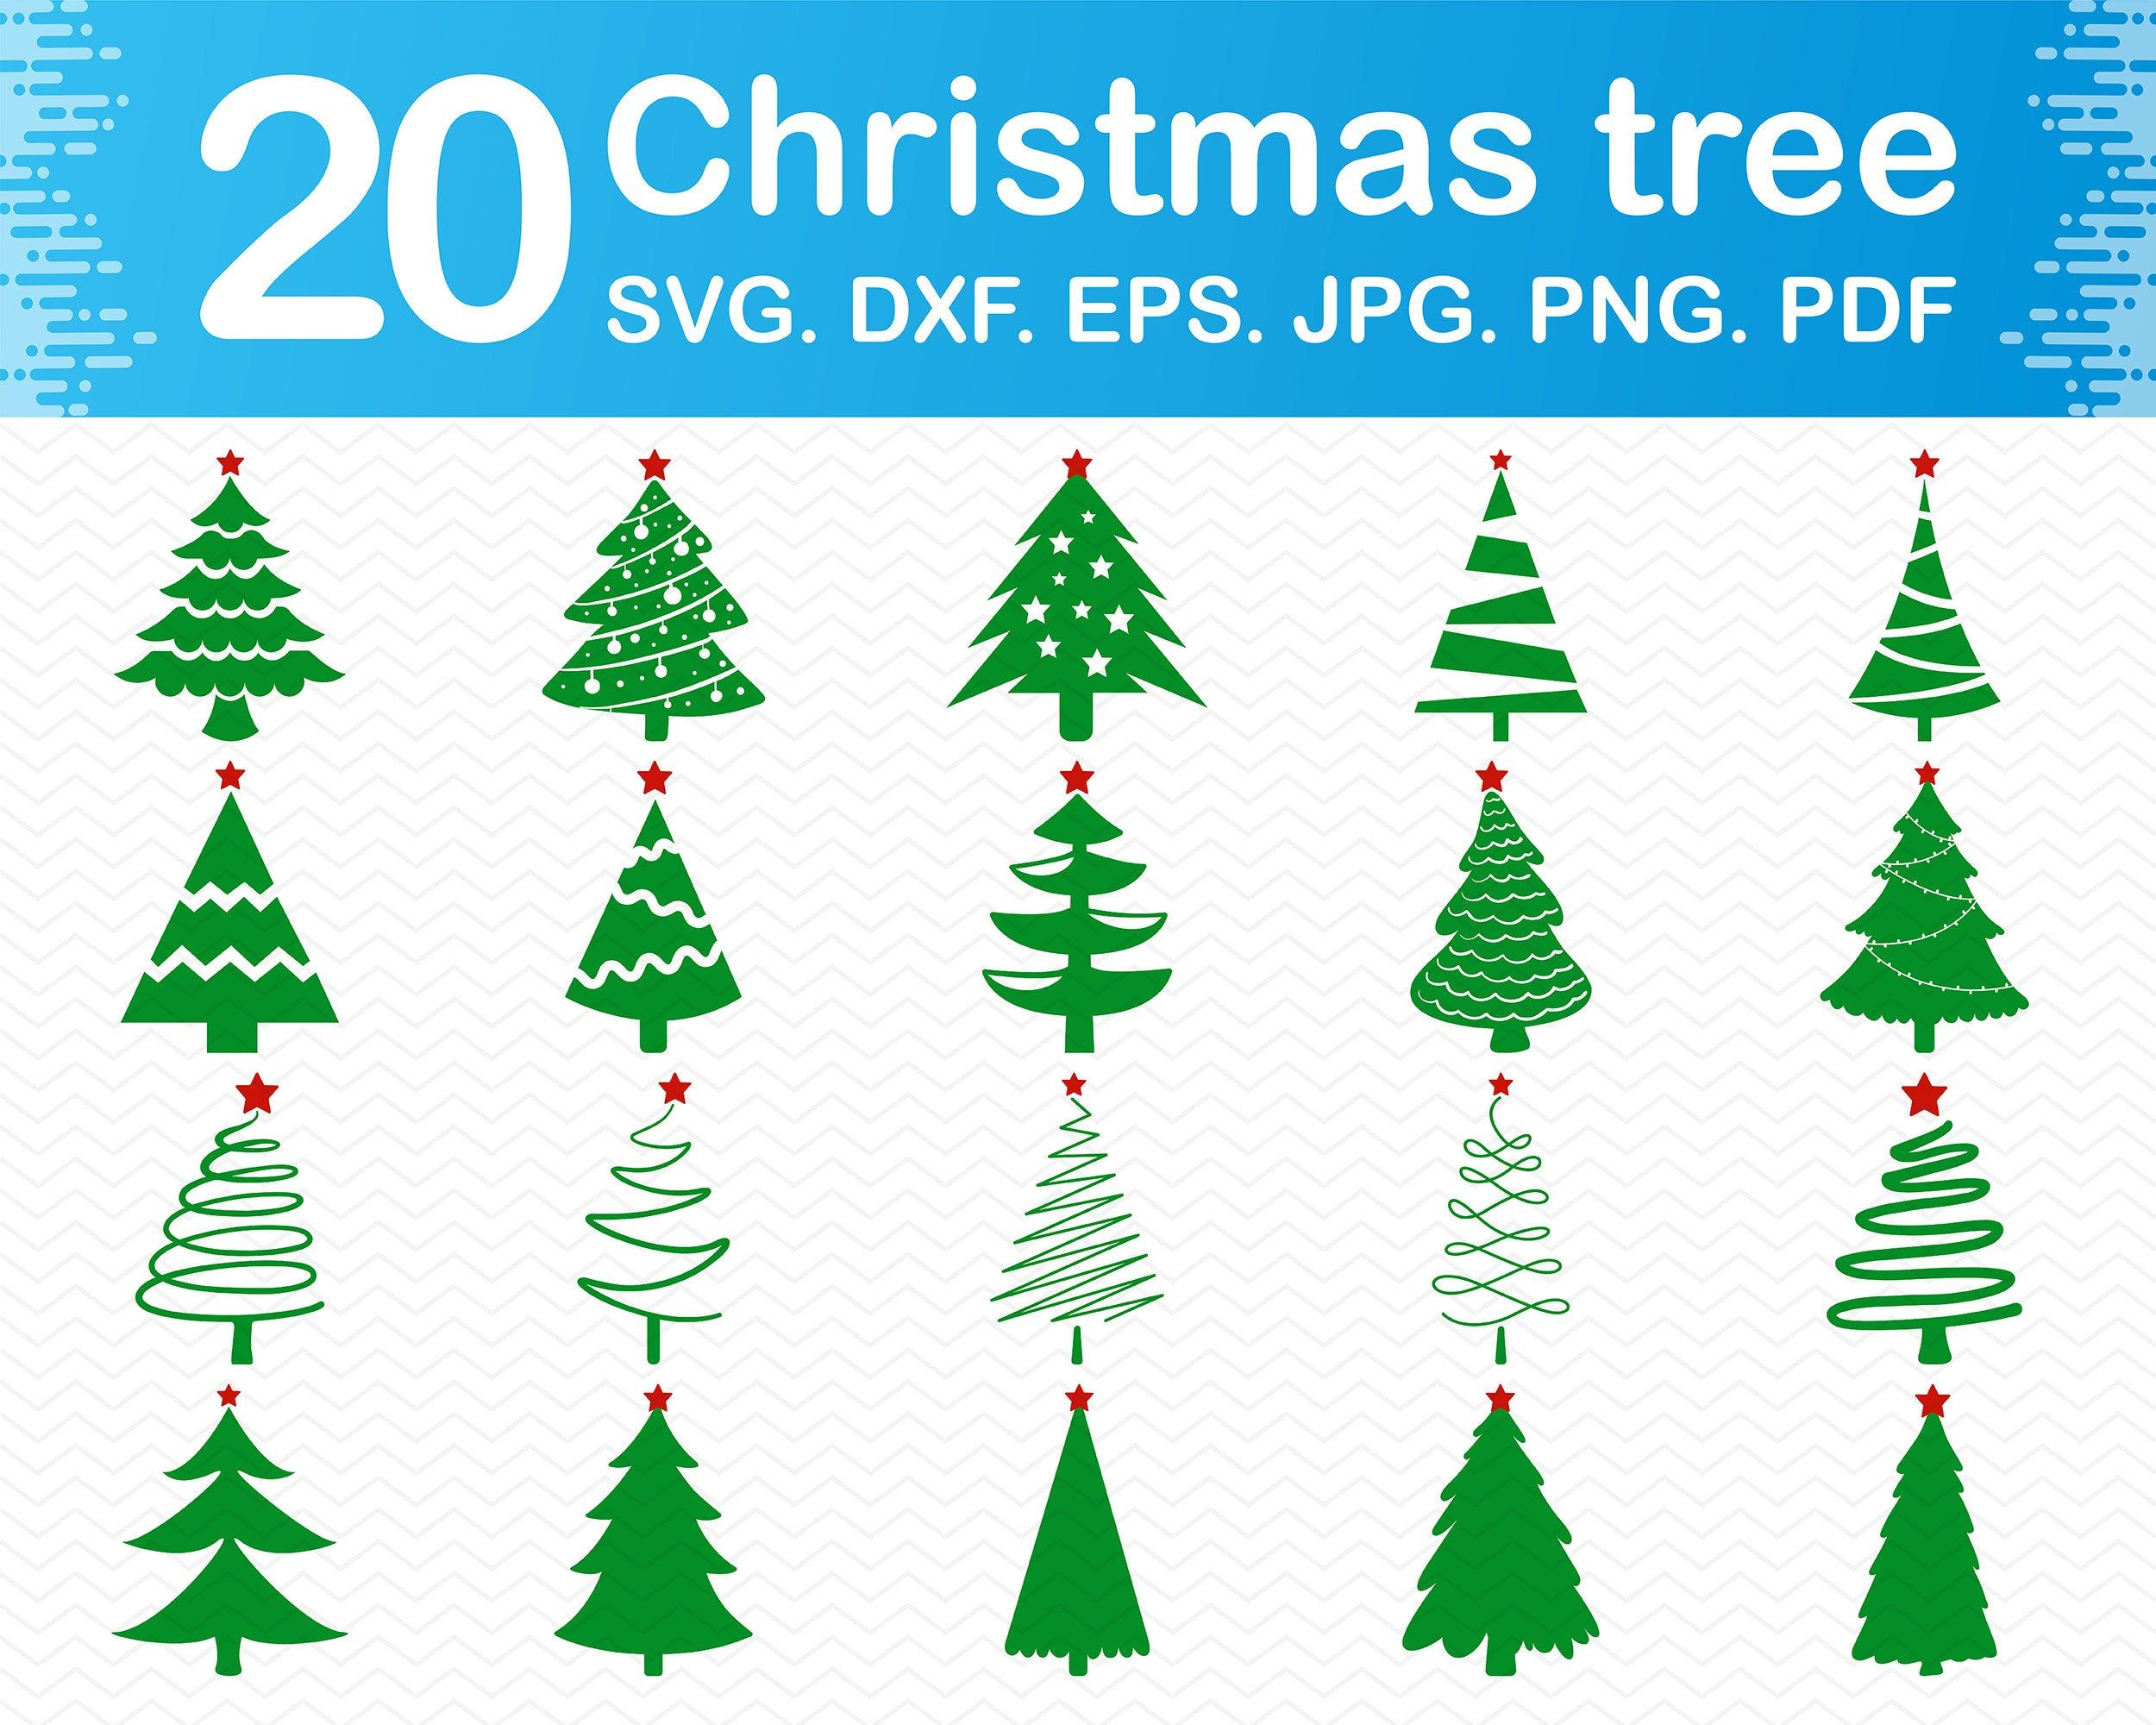 Christmas Tree Svg Christmas Svg Bundle Christmas Tree Png Etsy In 2020 Christmas Svg Tree Svg Svg